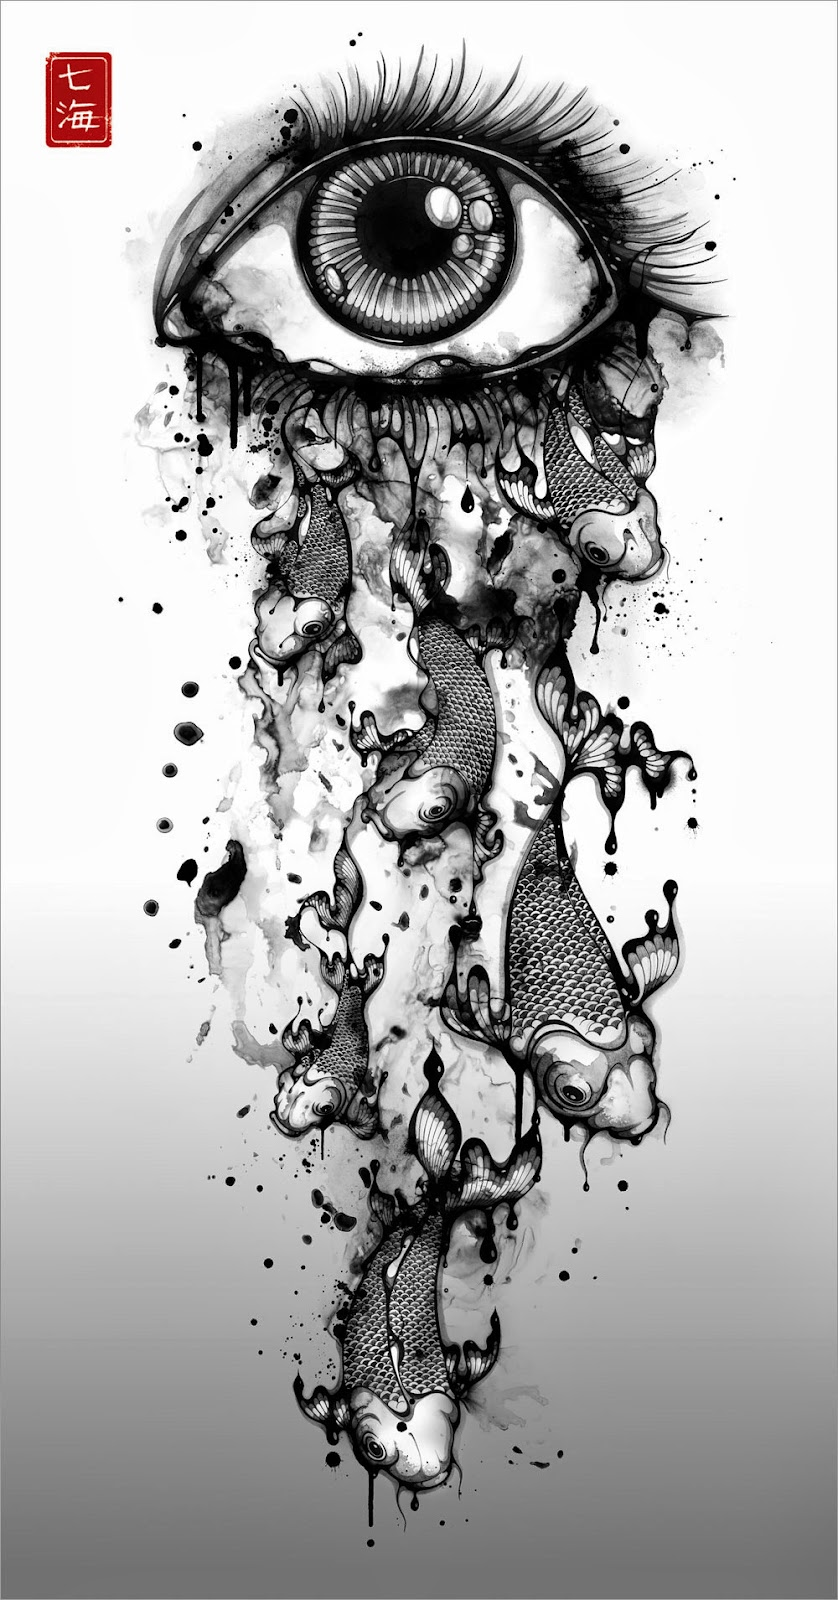 09-Ink-Tears-Nanami-Cowdroy-Splashes-of-Ink-Drawings-www-designstack-co